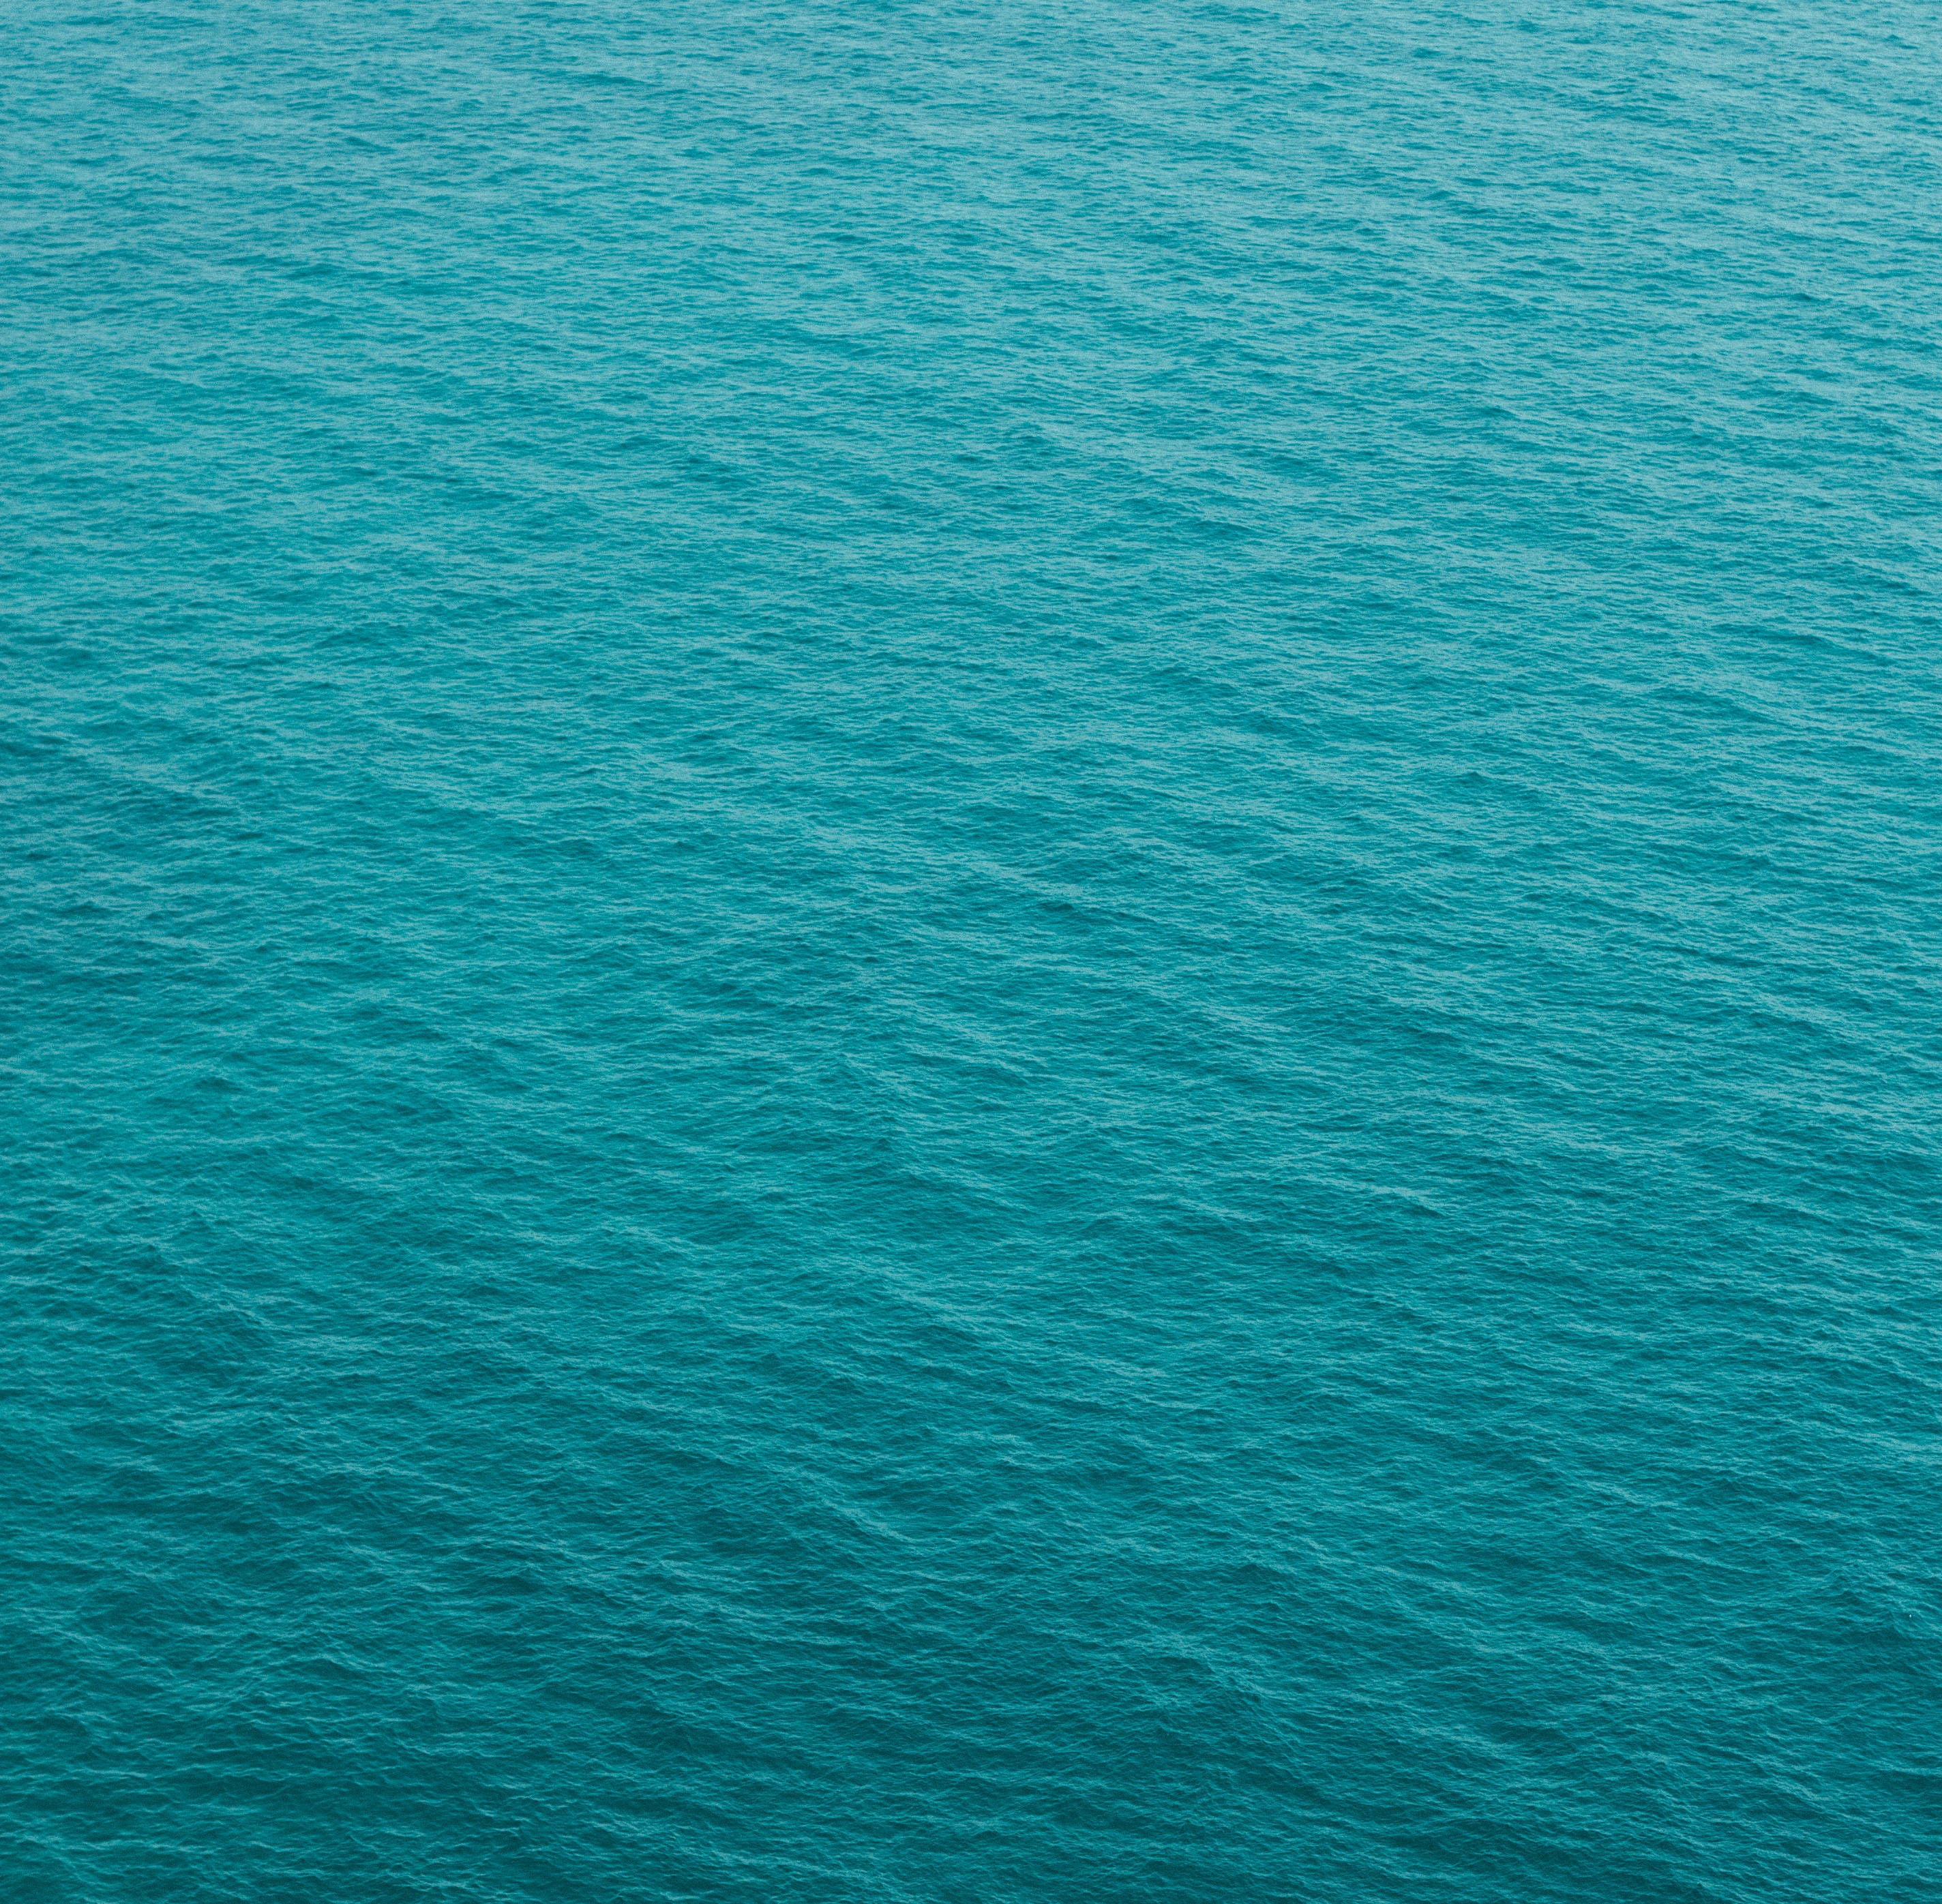 photography of green body of water